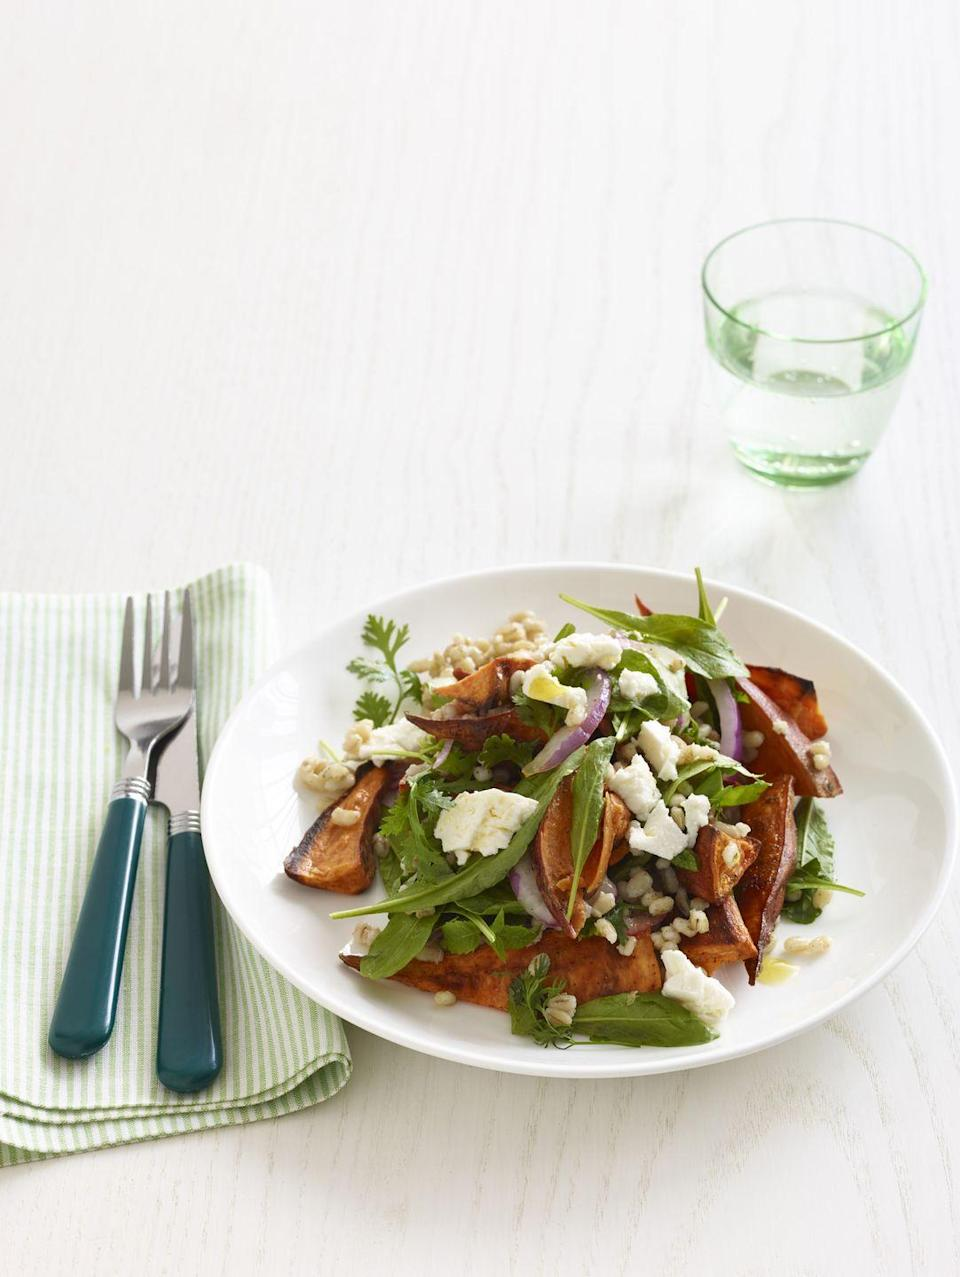 """<p>Dress a simple arugula salad with fresh and tasty ingredients like barley, sweet potatoes, and feta for a light weeknight dinner. </p><p><strong><a href=""""https://www.countryliving.com/food-drinks/recipes/a34692/roasted-sweet-potato-salad-barley-arugula-recipe-wdy1214/"""" rel=""""nofollow noopener"""" target=""""_blank"""" data-ylk=""""slk:Get the recipe"""" class=""""link rapid-noclick-resp"""">Get the recipe</a>. </strong></p>"""